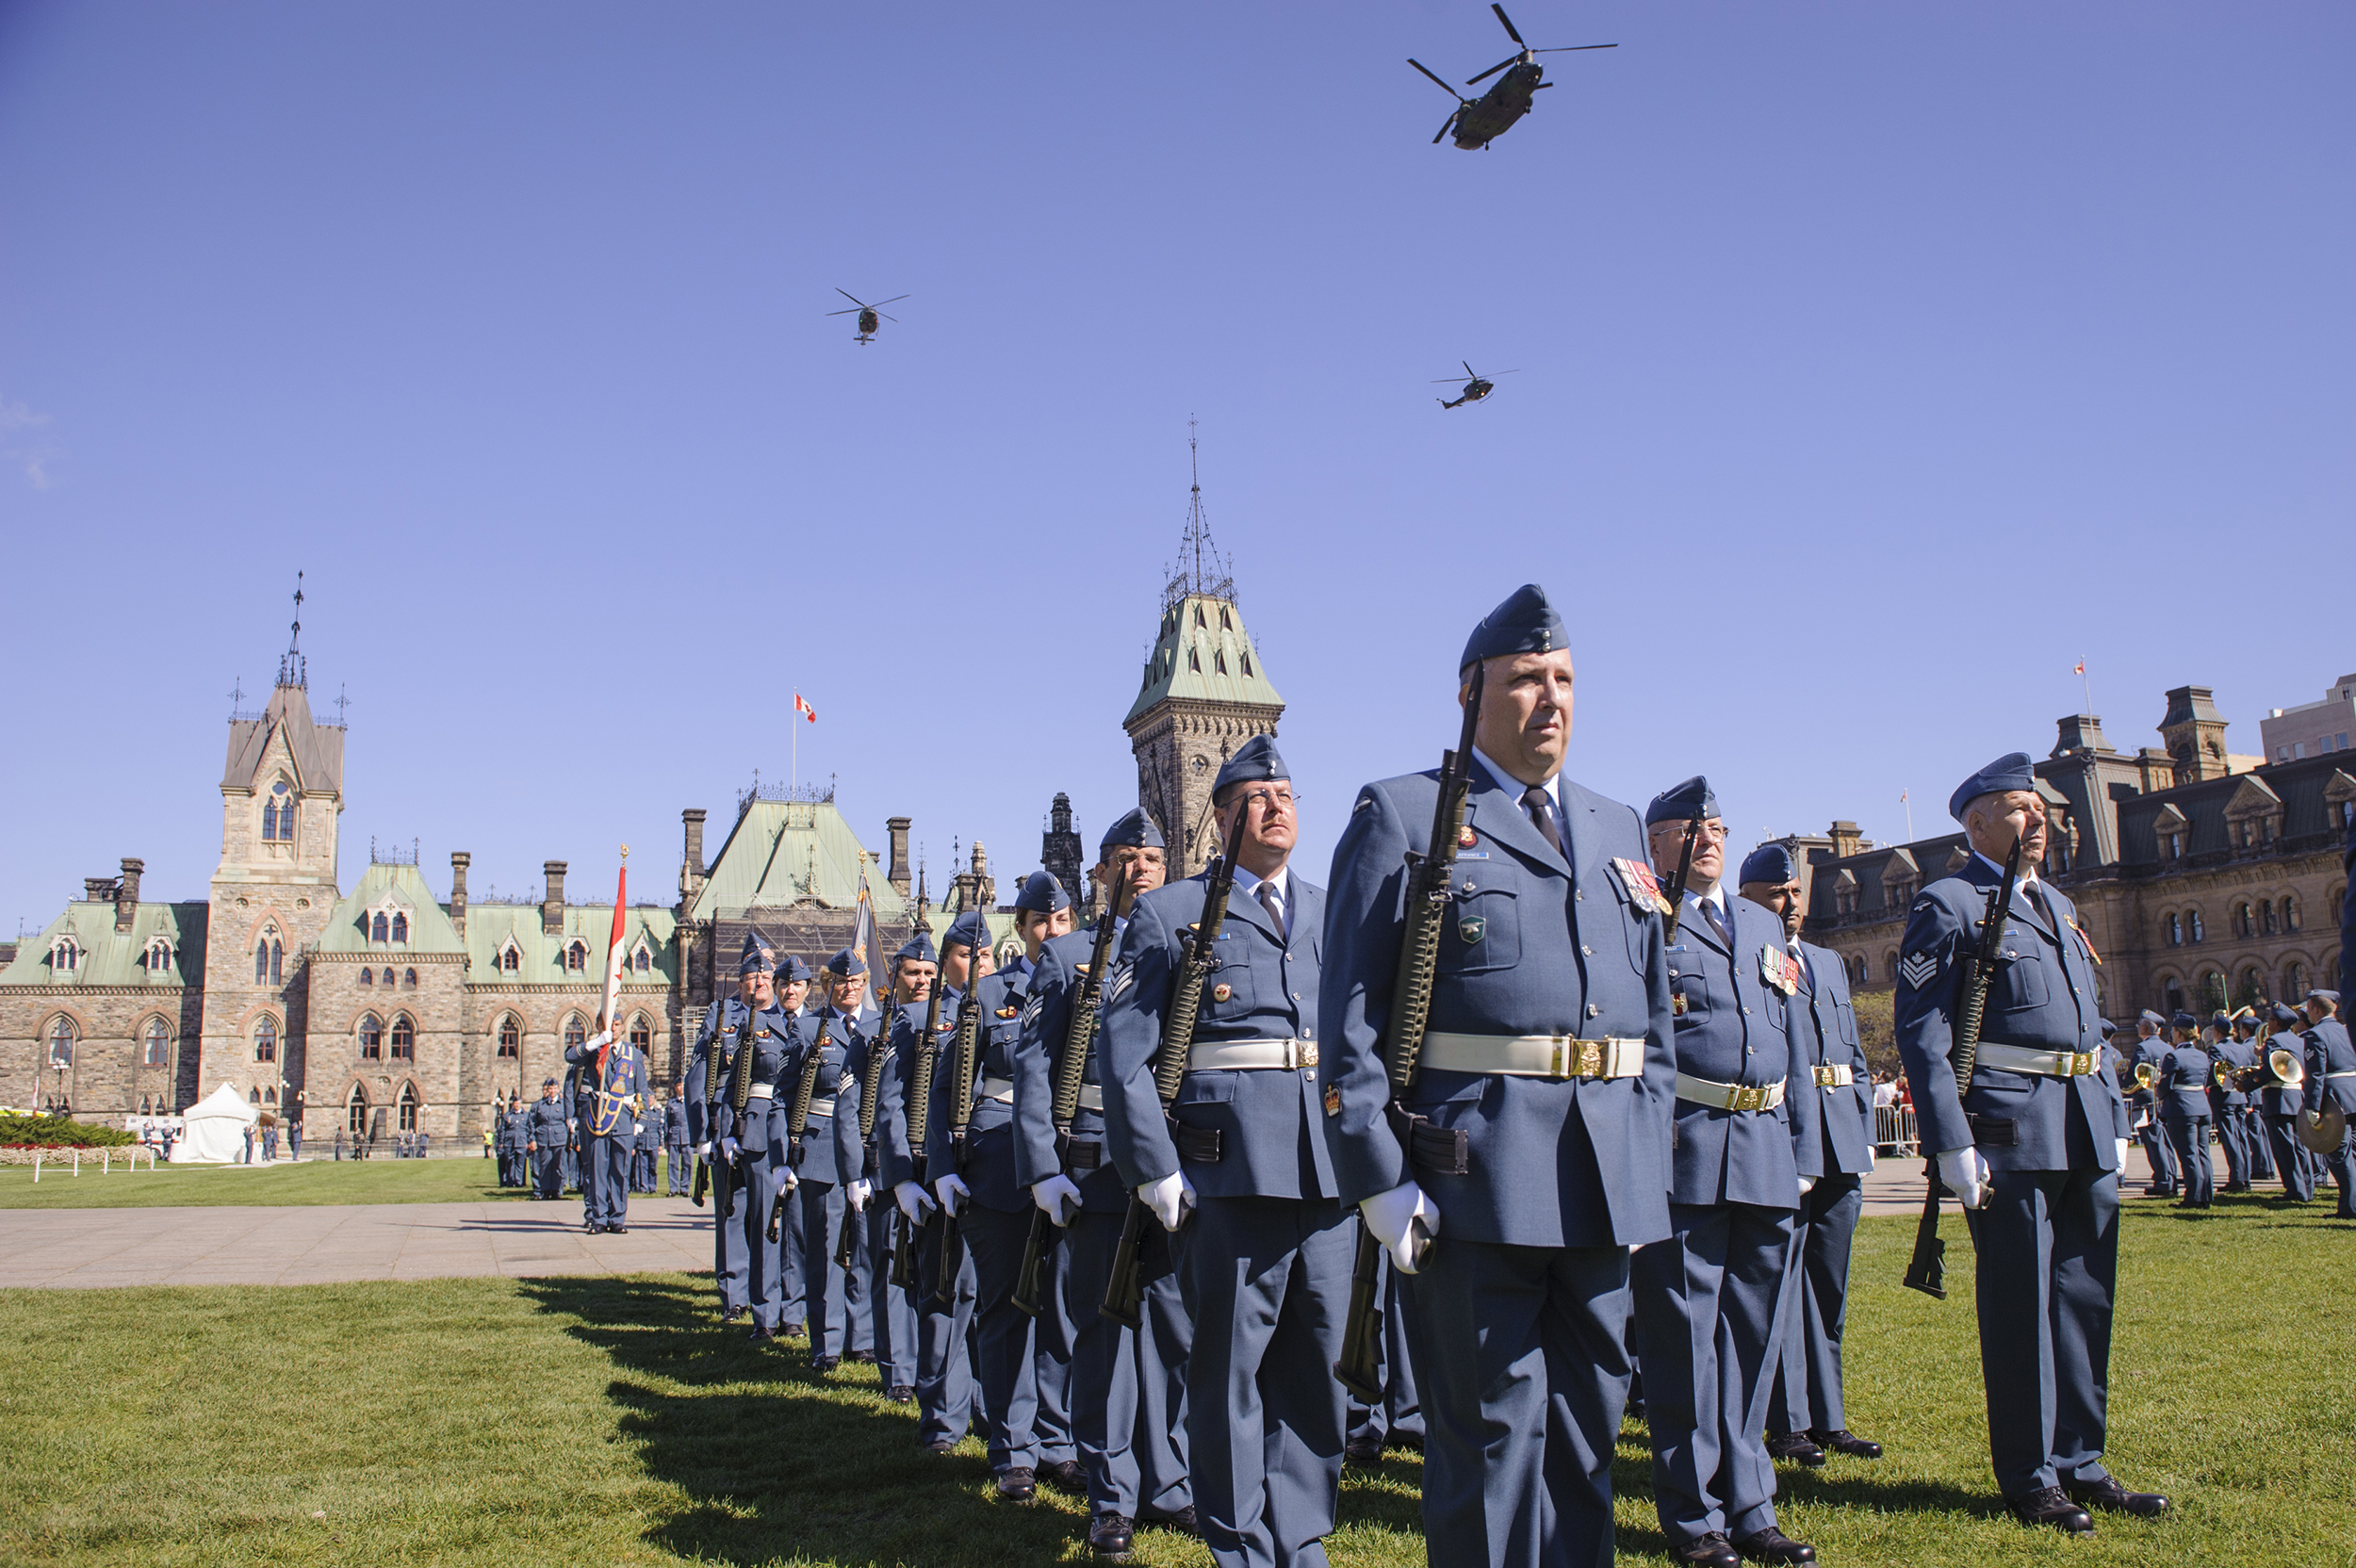 Members of the Royal Canadian Air Force on parade during the national Battle of Britain ceremony on Parliament Hill, September 20, 2015, as a CH-147F Chinook helicopter and two CH-146 Griffon helicopters fly overhead. PHOTO: Master Corporal Daniel Merrell